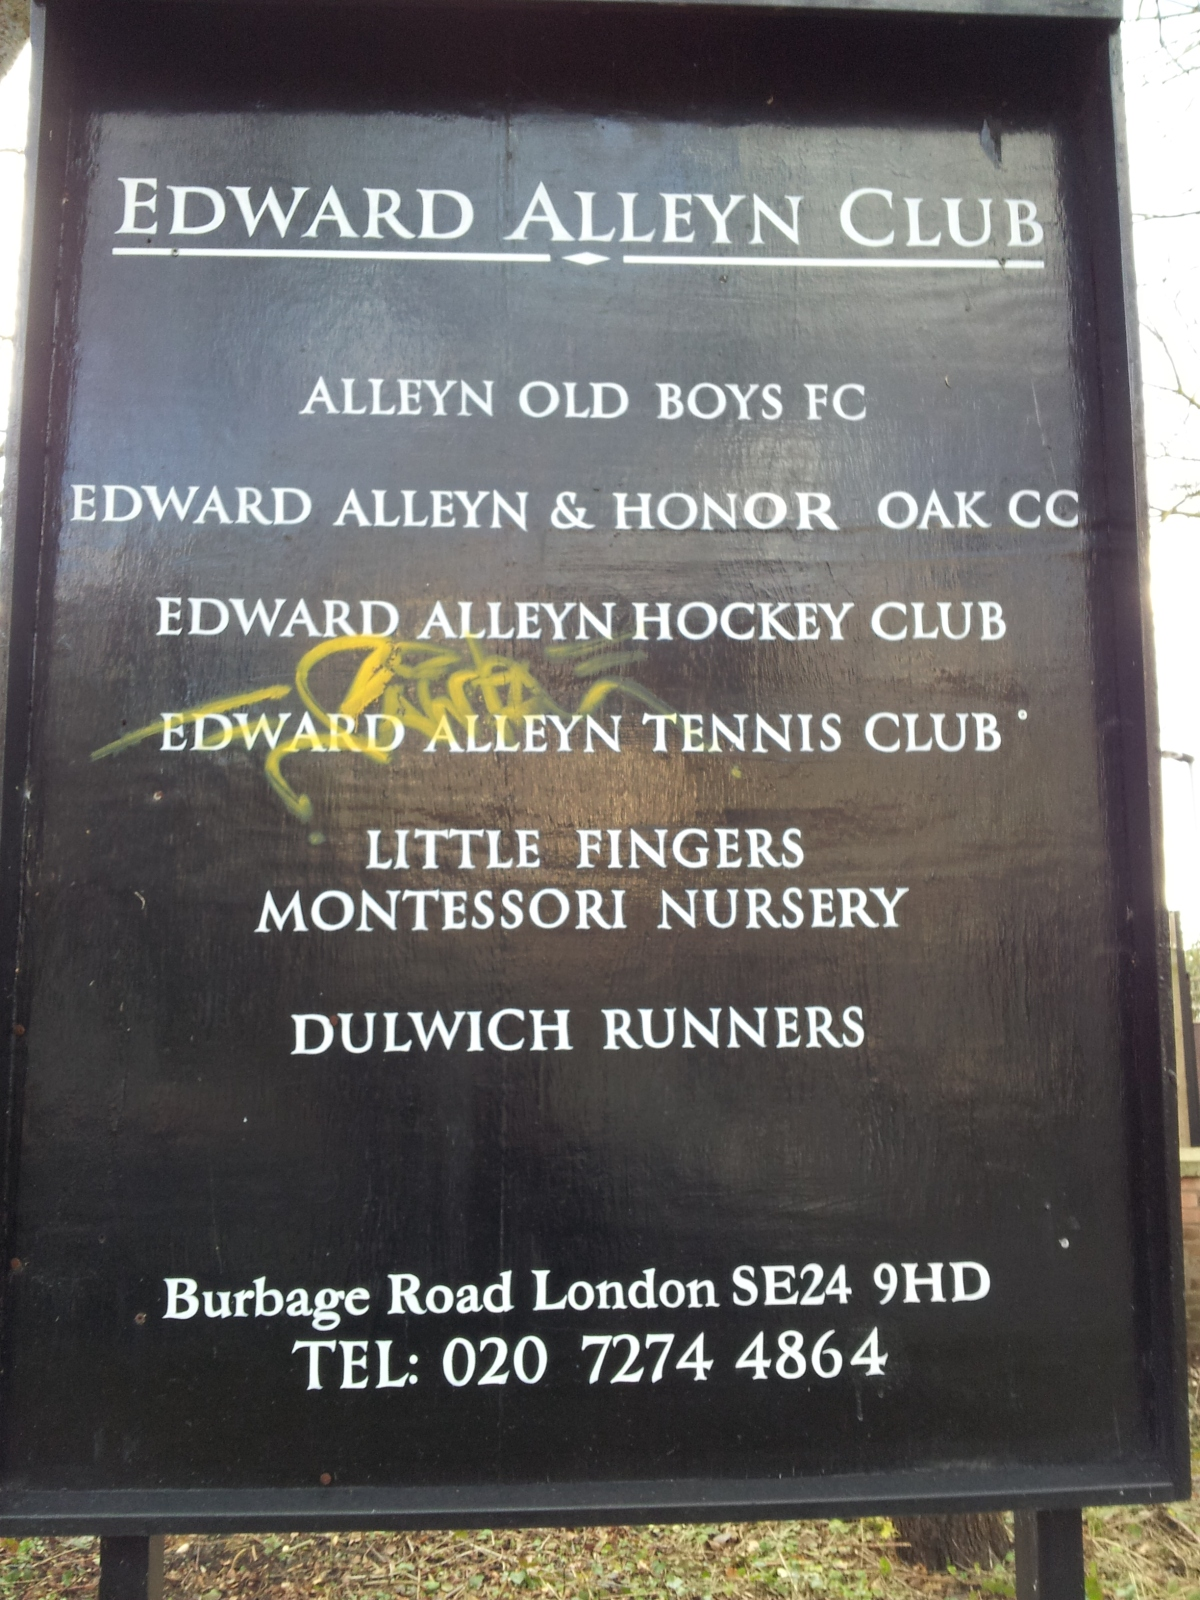 Edward Alleyn Club